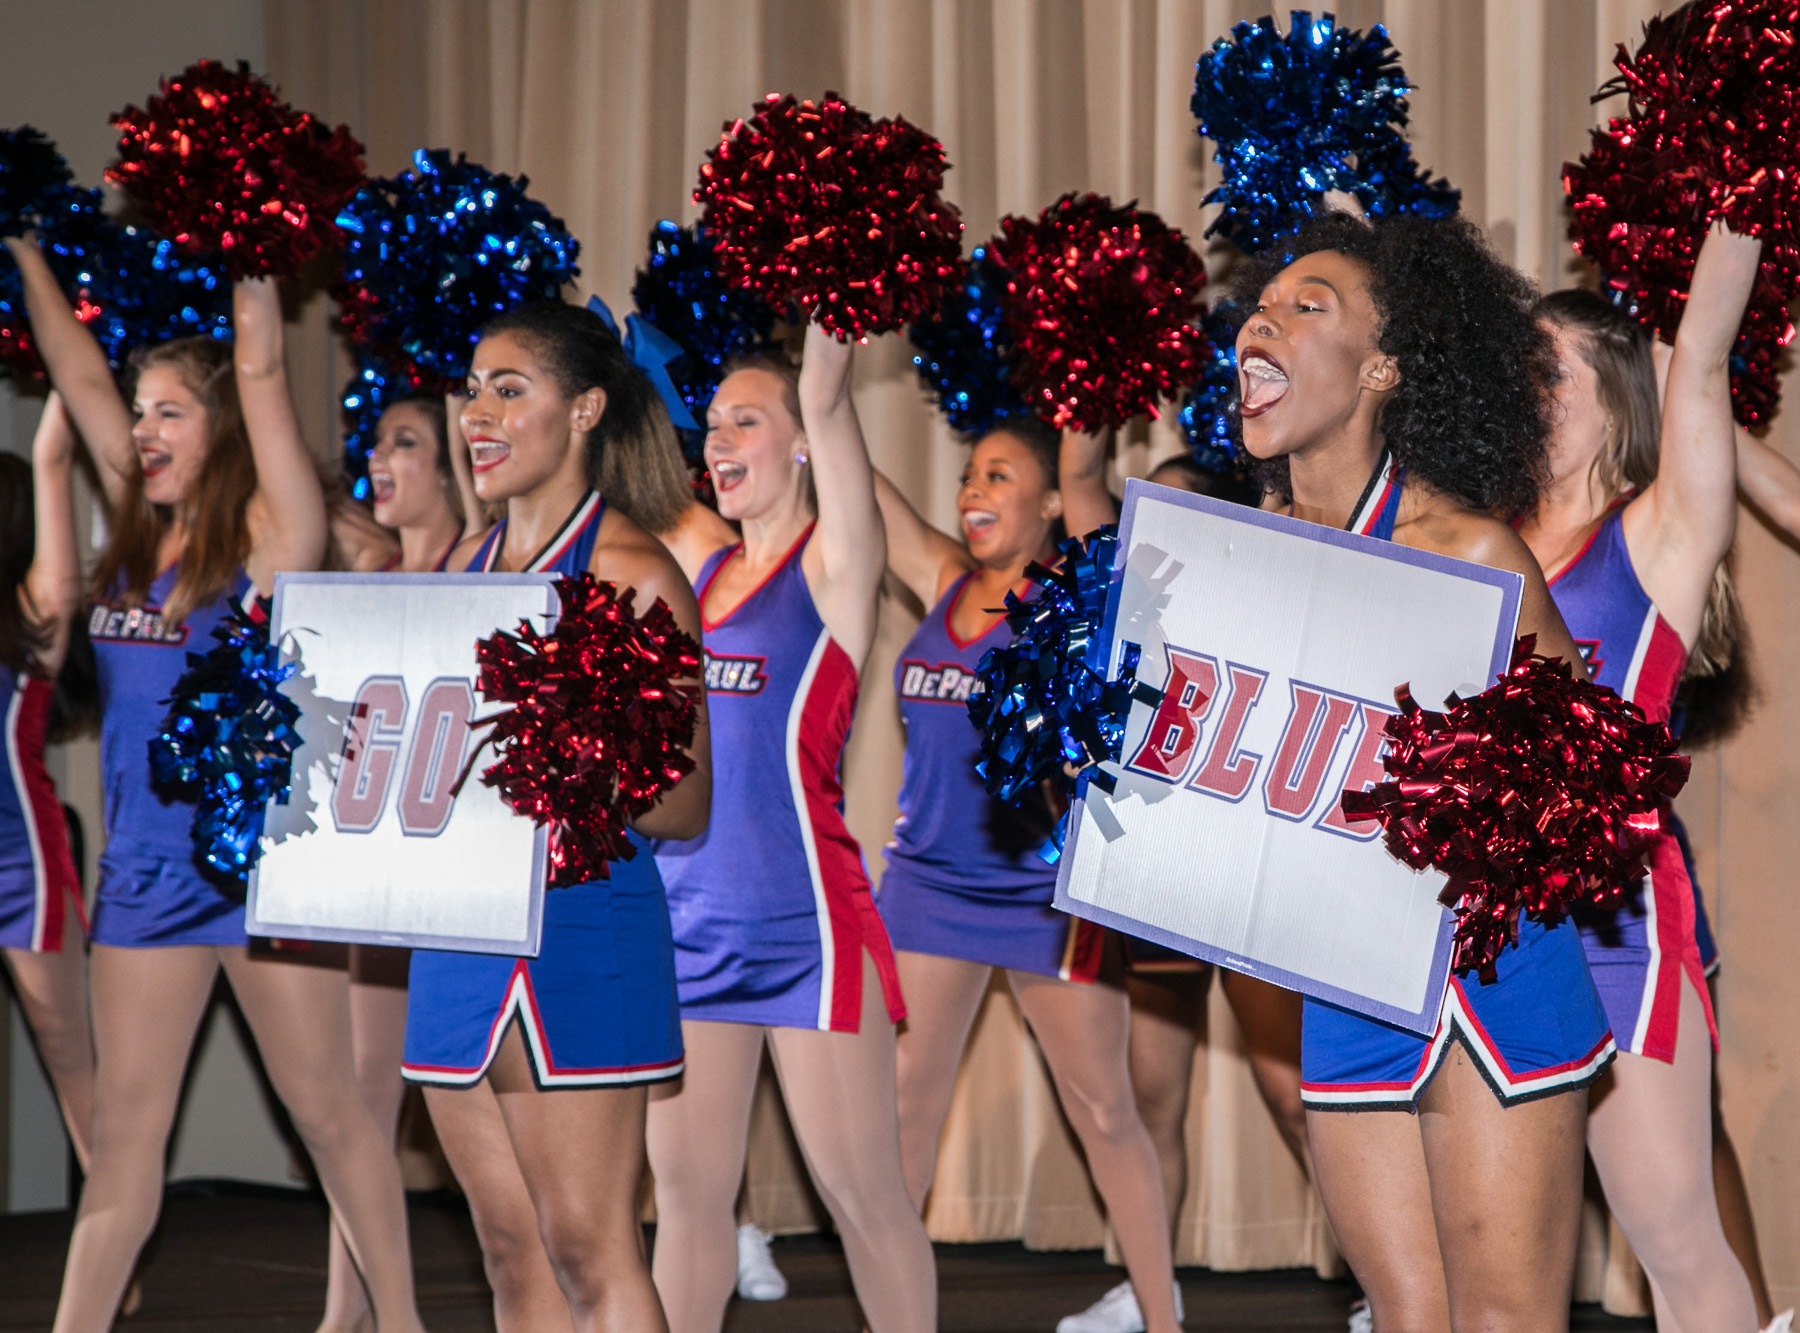 Members of the DePaul University Dance and Cheer Teams warm up the crowd during the Family Weekend Kickoff party. (DePaul University/Jamie Moncrief)